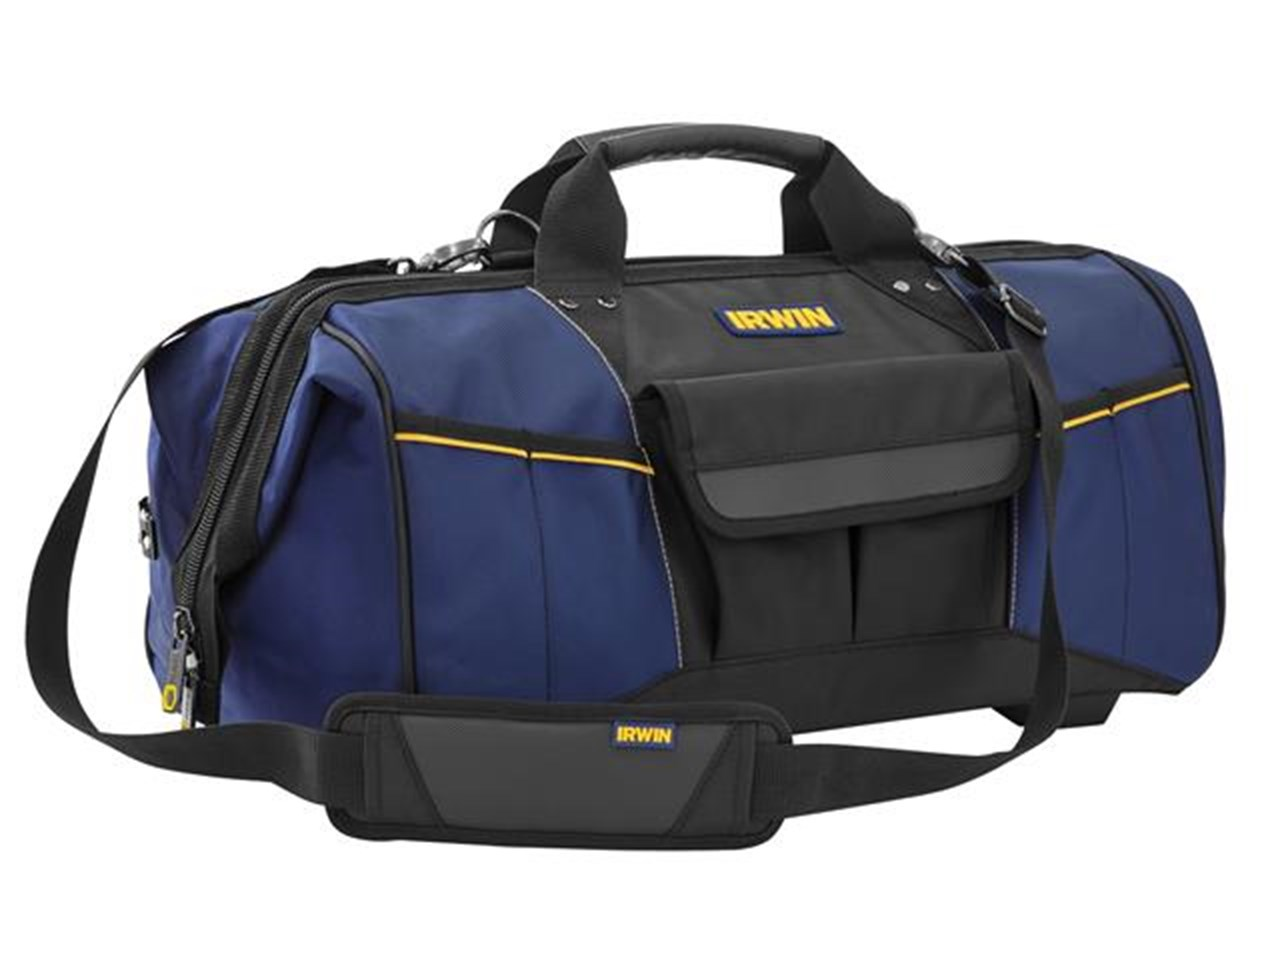 IRWIN 2017824 - Defender ToolBag 550mm/22In550 x 300 x 300 mm, 1680 Denier Material